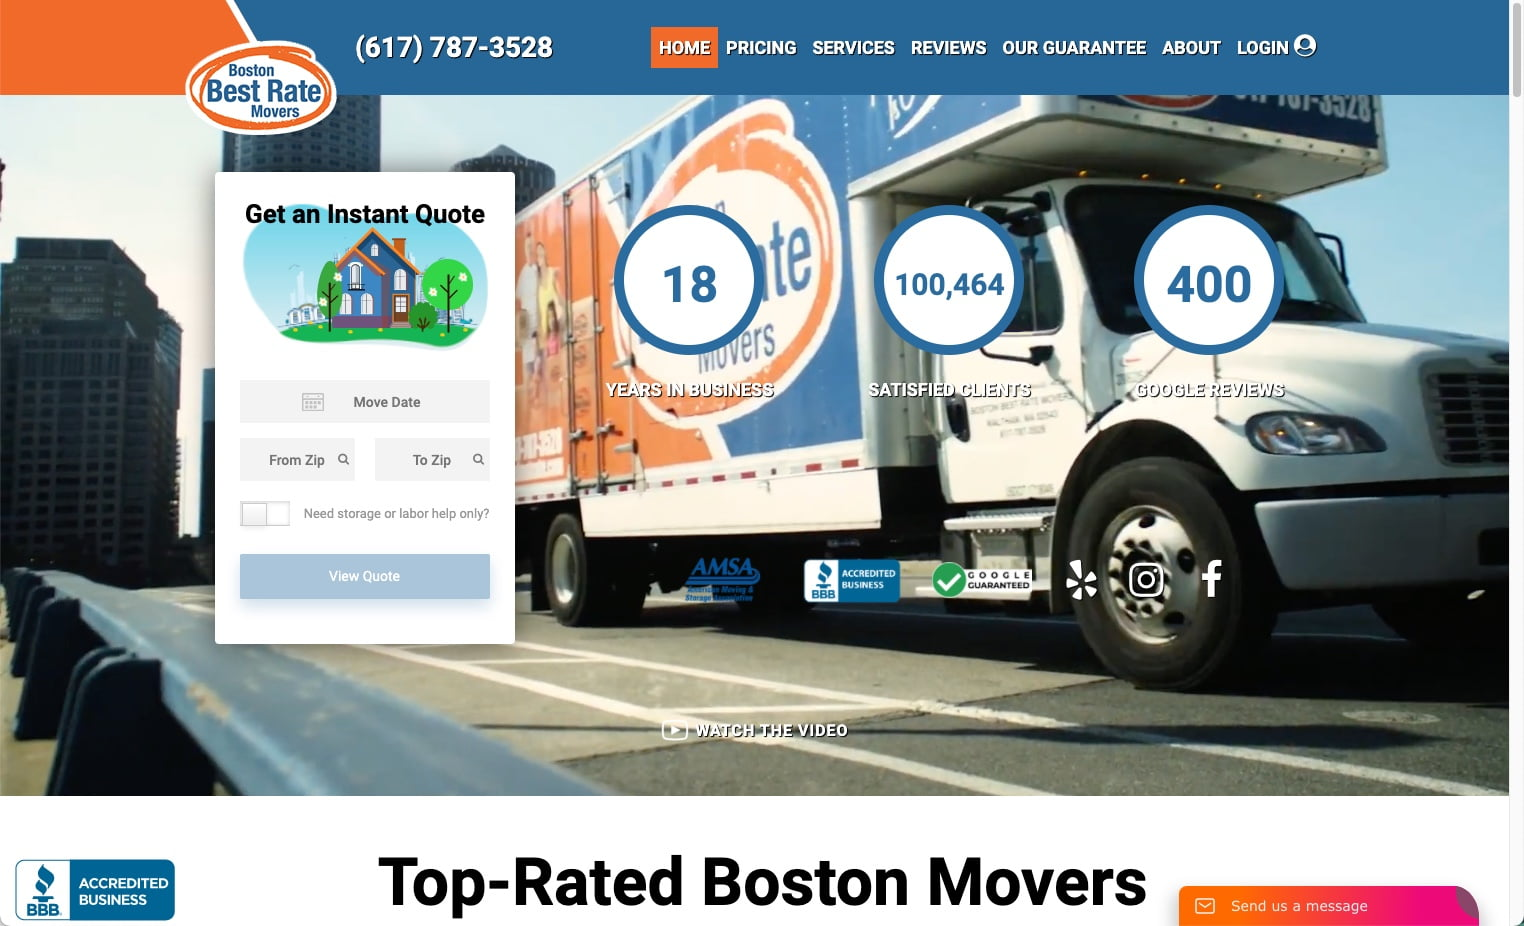 Boston Best Rate Movers